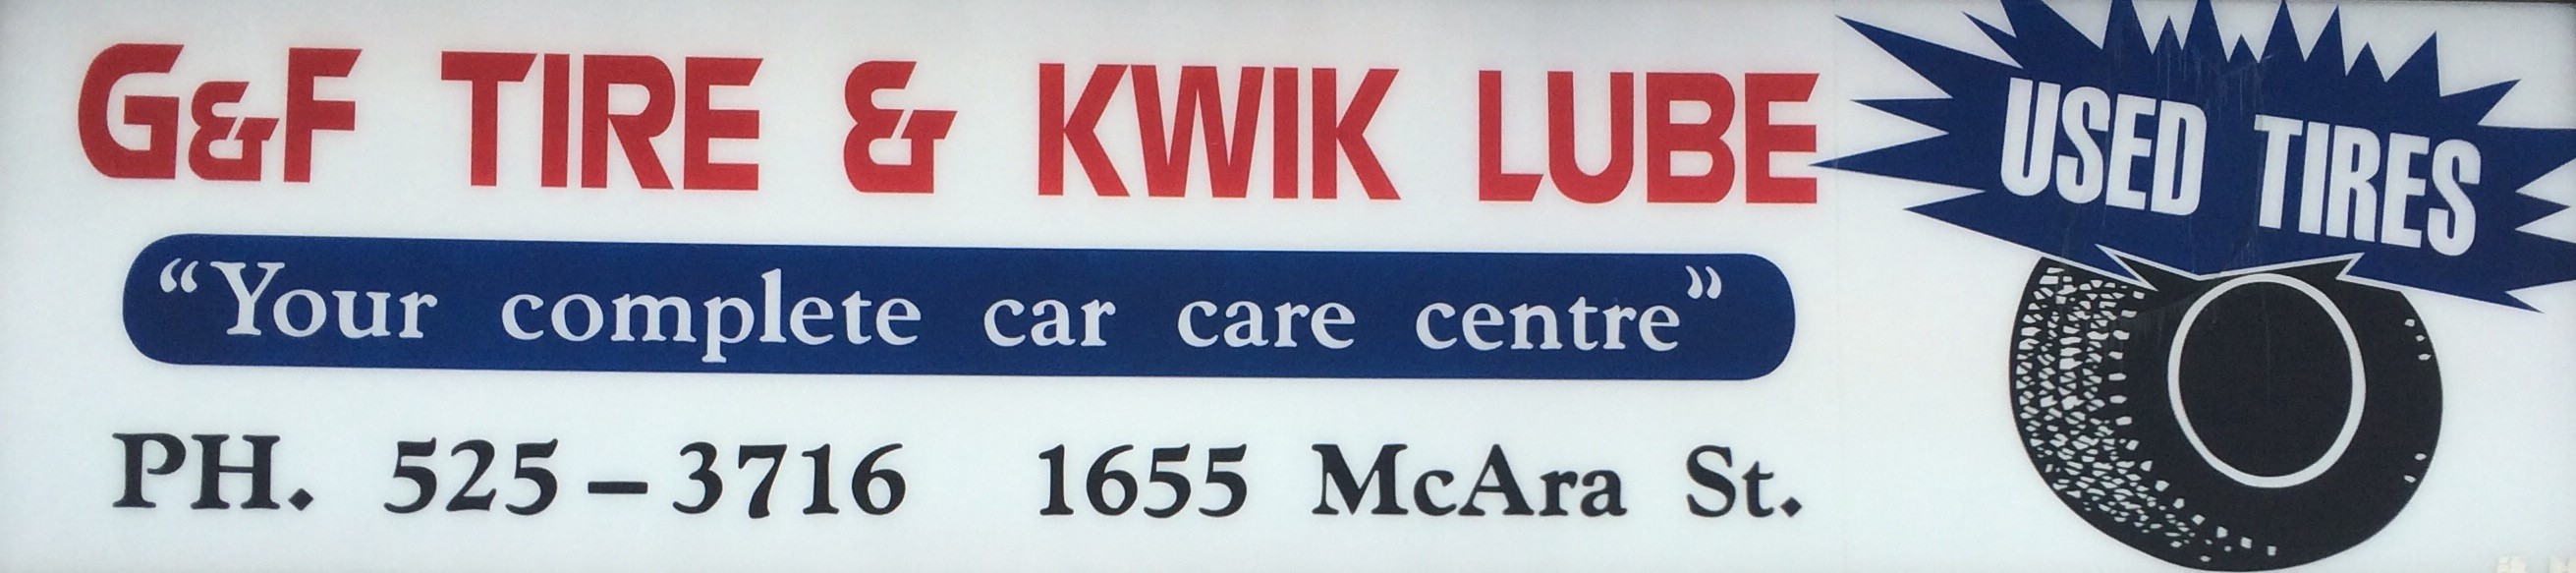 G & F  Tire & Kwik Lube